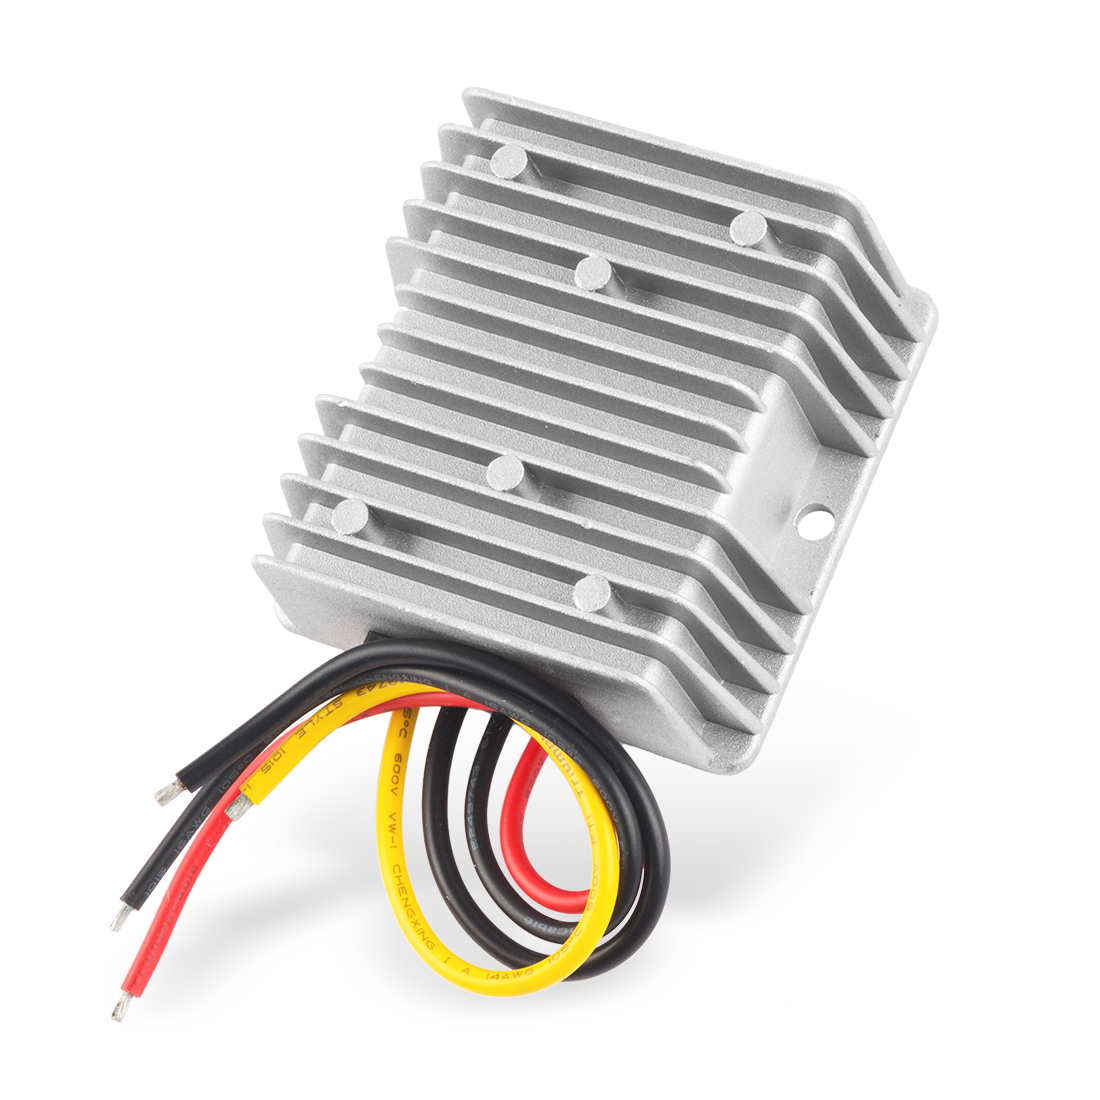 uxcell Power Converter Regulator DC36V(20V~60V) Step-Down to DC12V 15A 180W Waterproof Voltage Convert Transformer